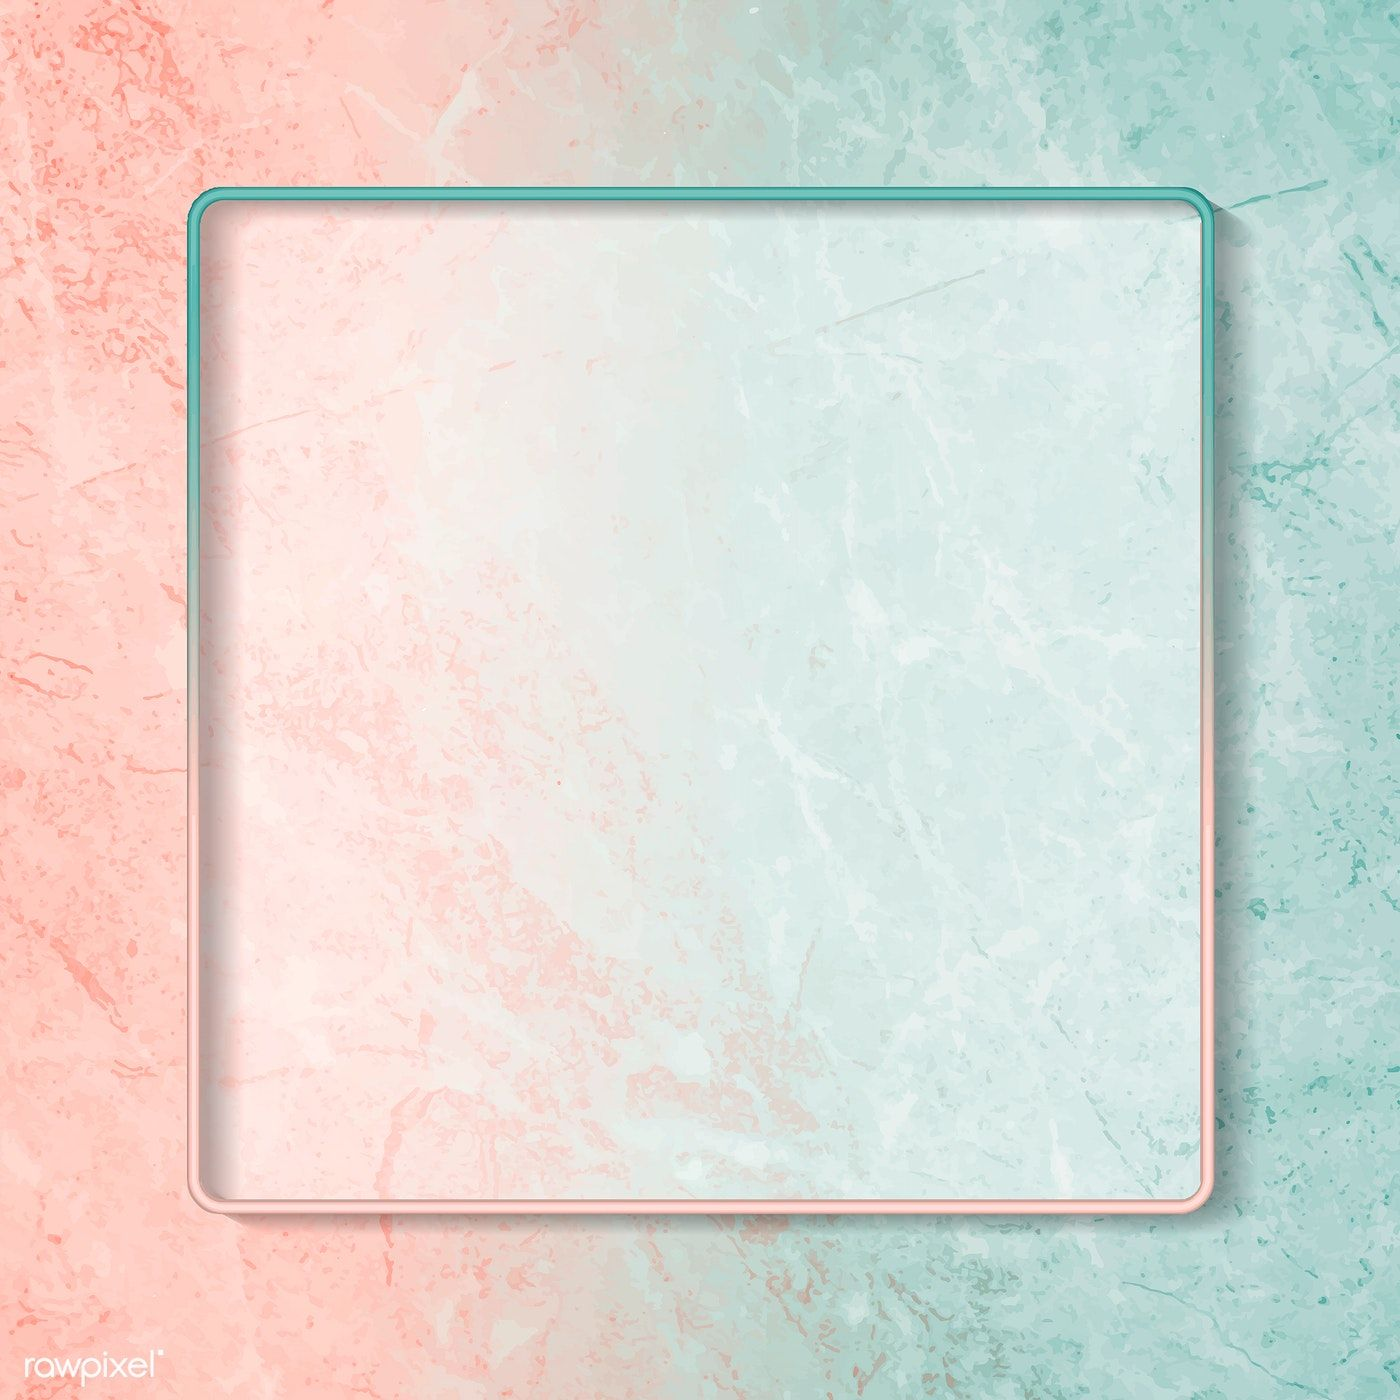 Download Premium Vector Of Square Frame On Abstract Background Vector Instagram Frame Template Abstract Backgrounds Square Frames